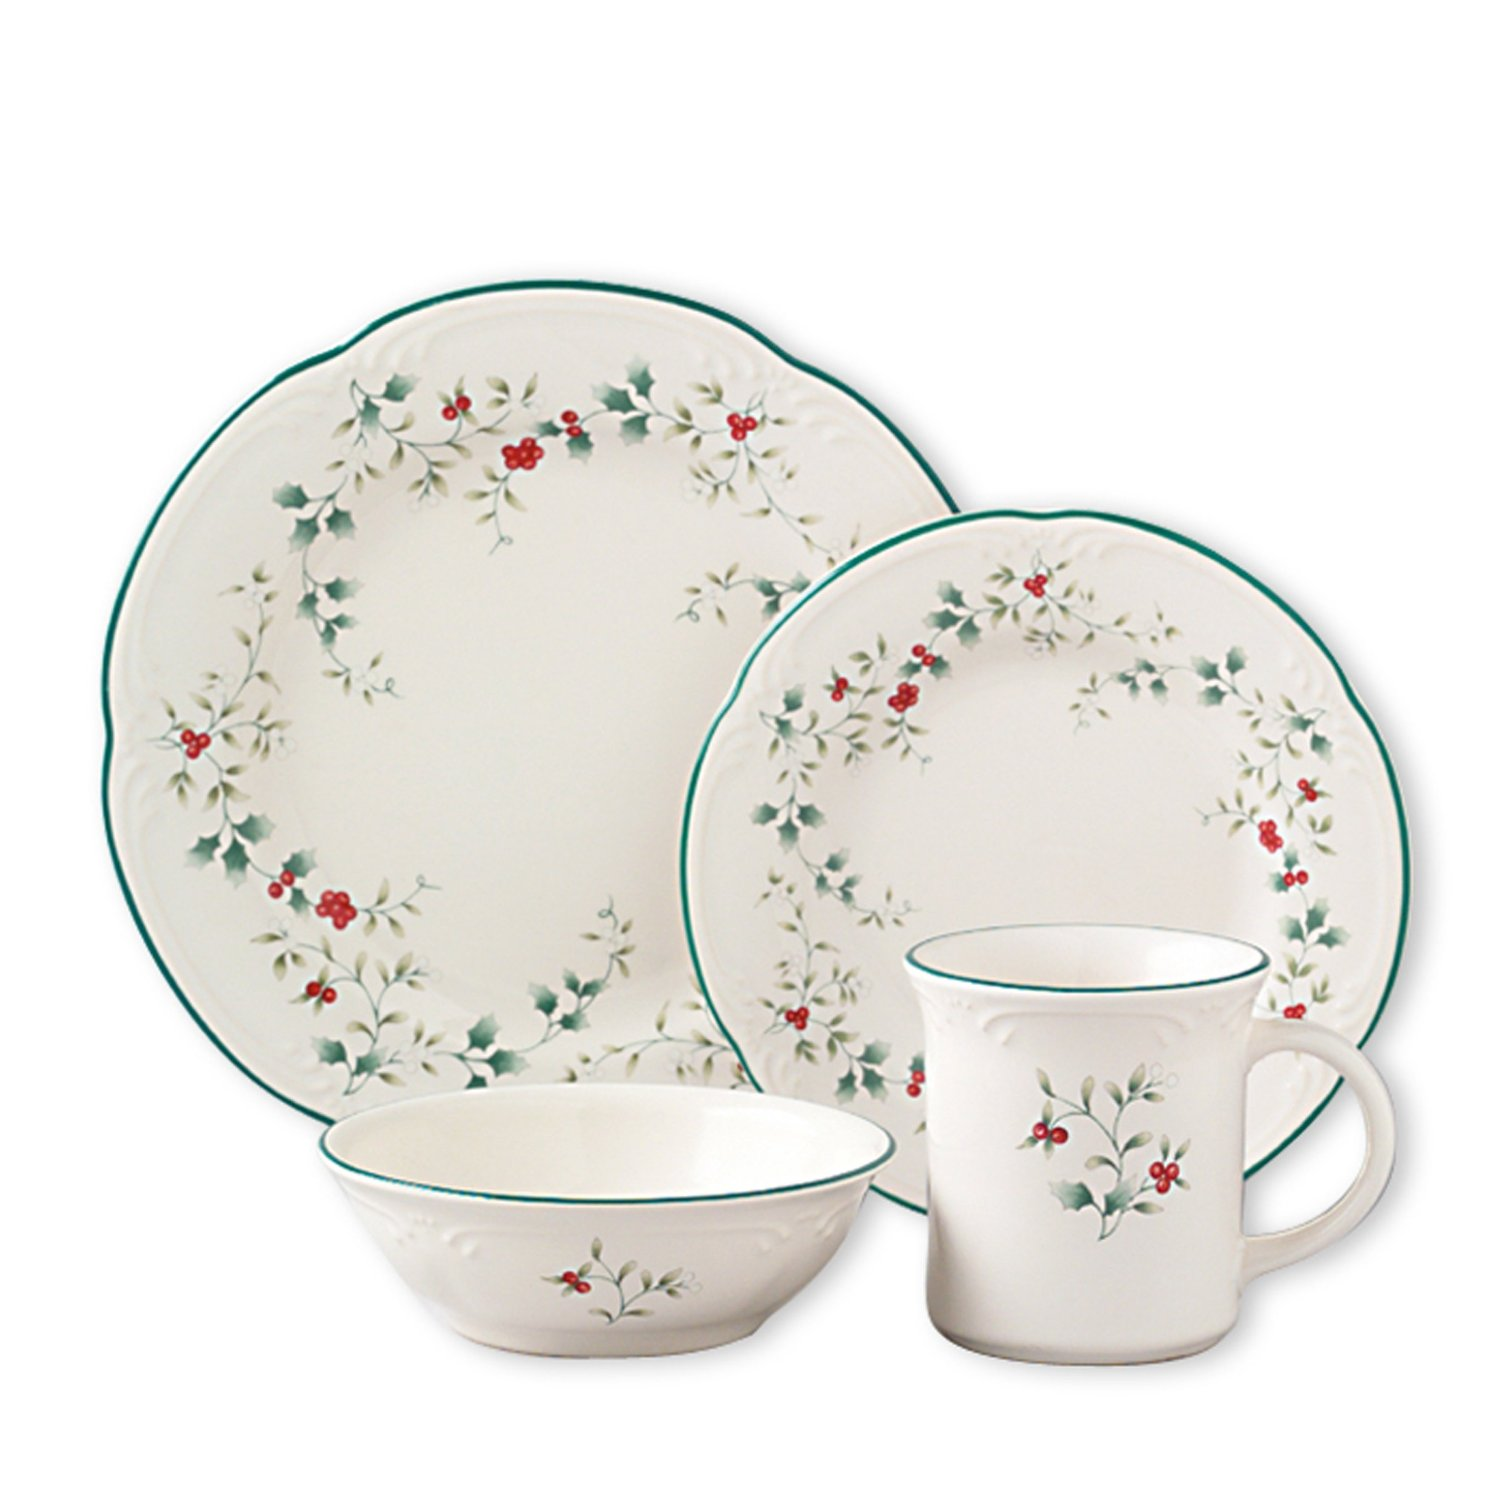 Pfaltzgraff Winterberry Dinnerware Set u2013 Microwave and Dishwasher Safe Stoneware Matching Serving Dishes Flatware  sc 1 st  TopProducts.com & Best Thanksgiving Dinnerware Set Reviews of 2018 at TopProducts.com